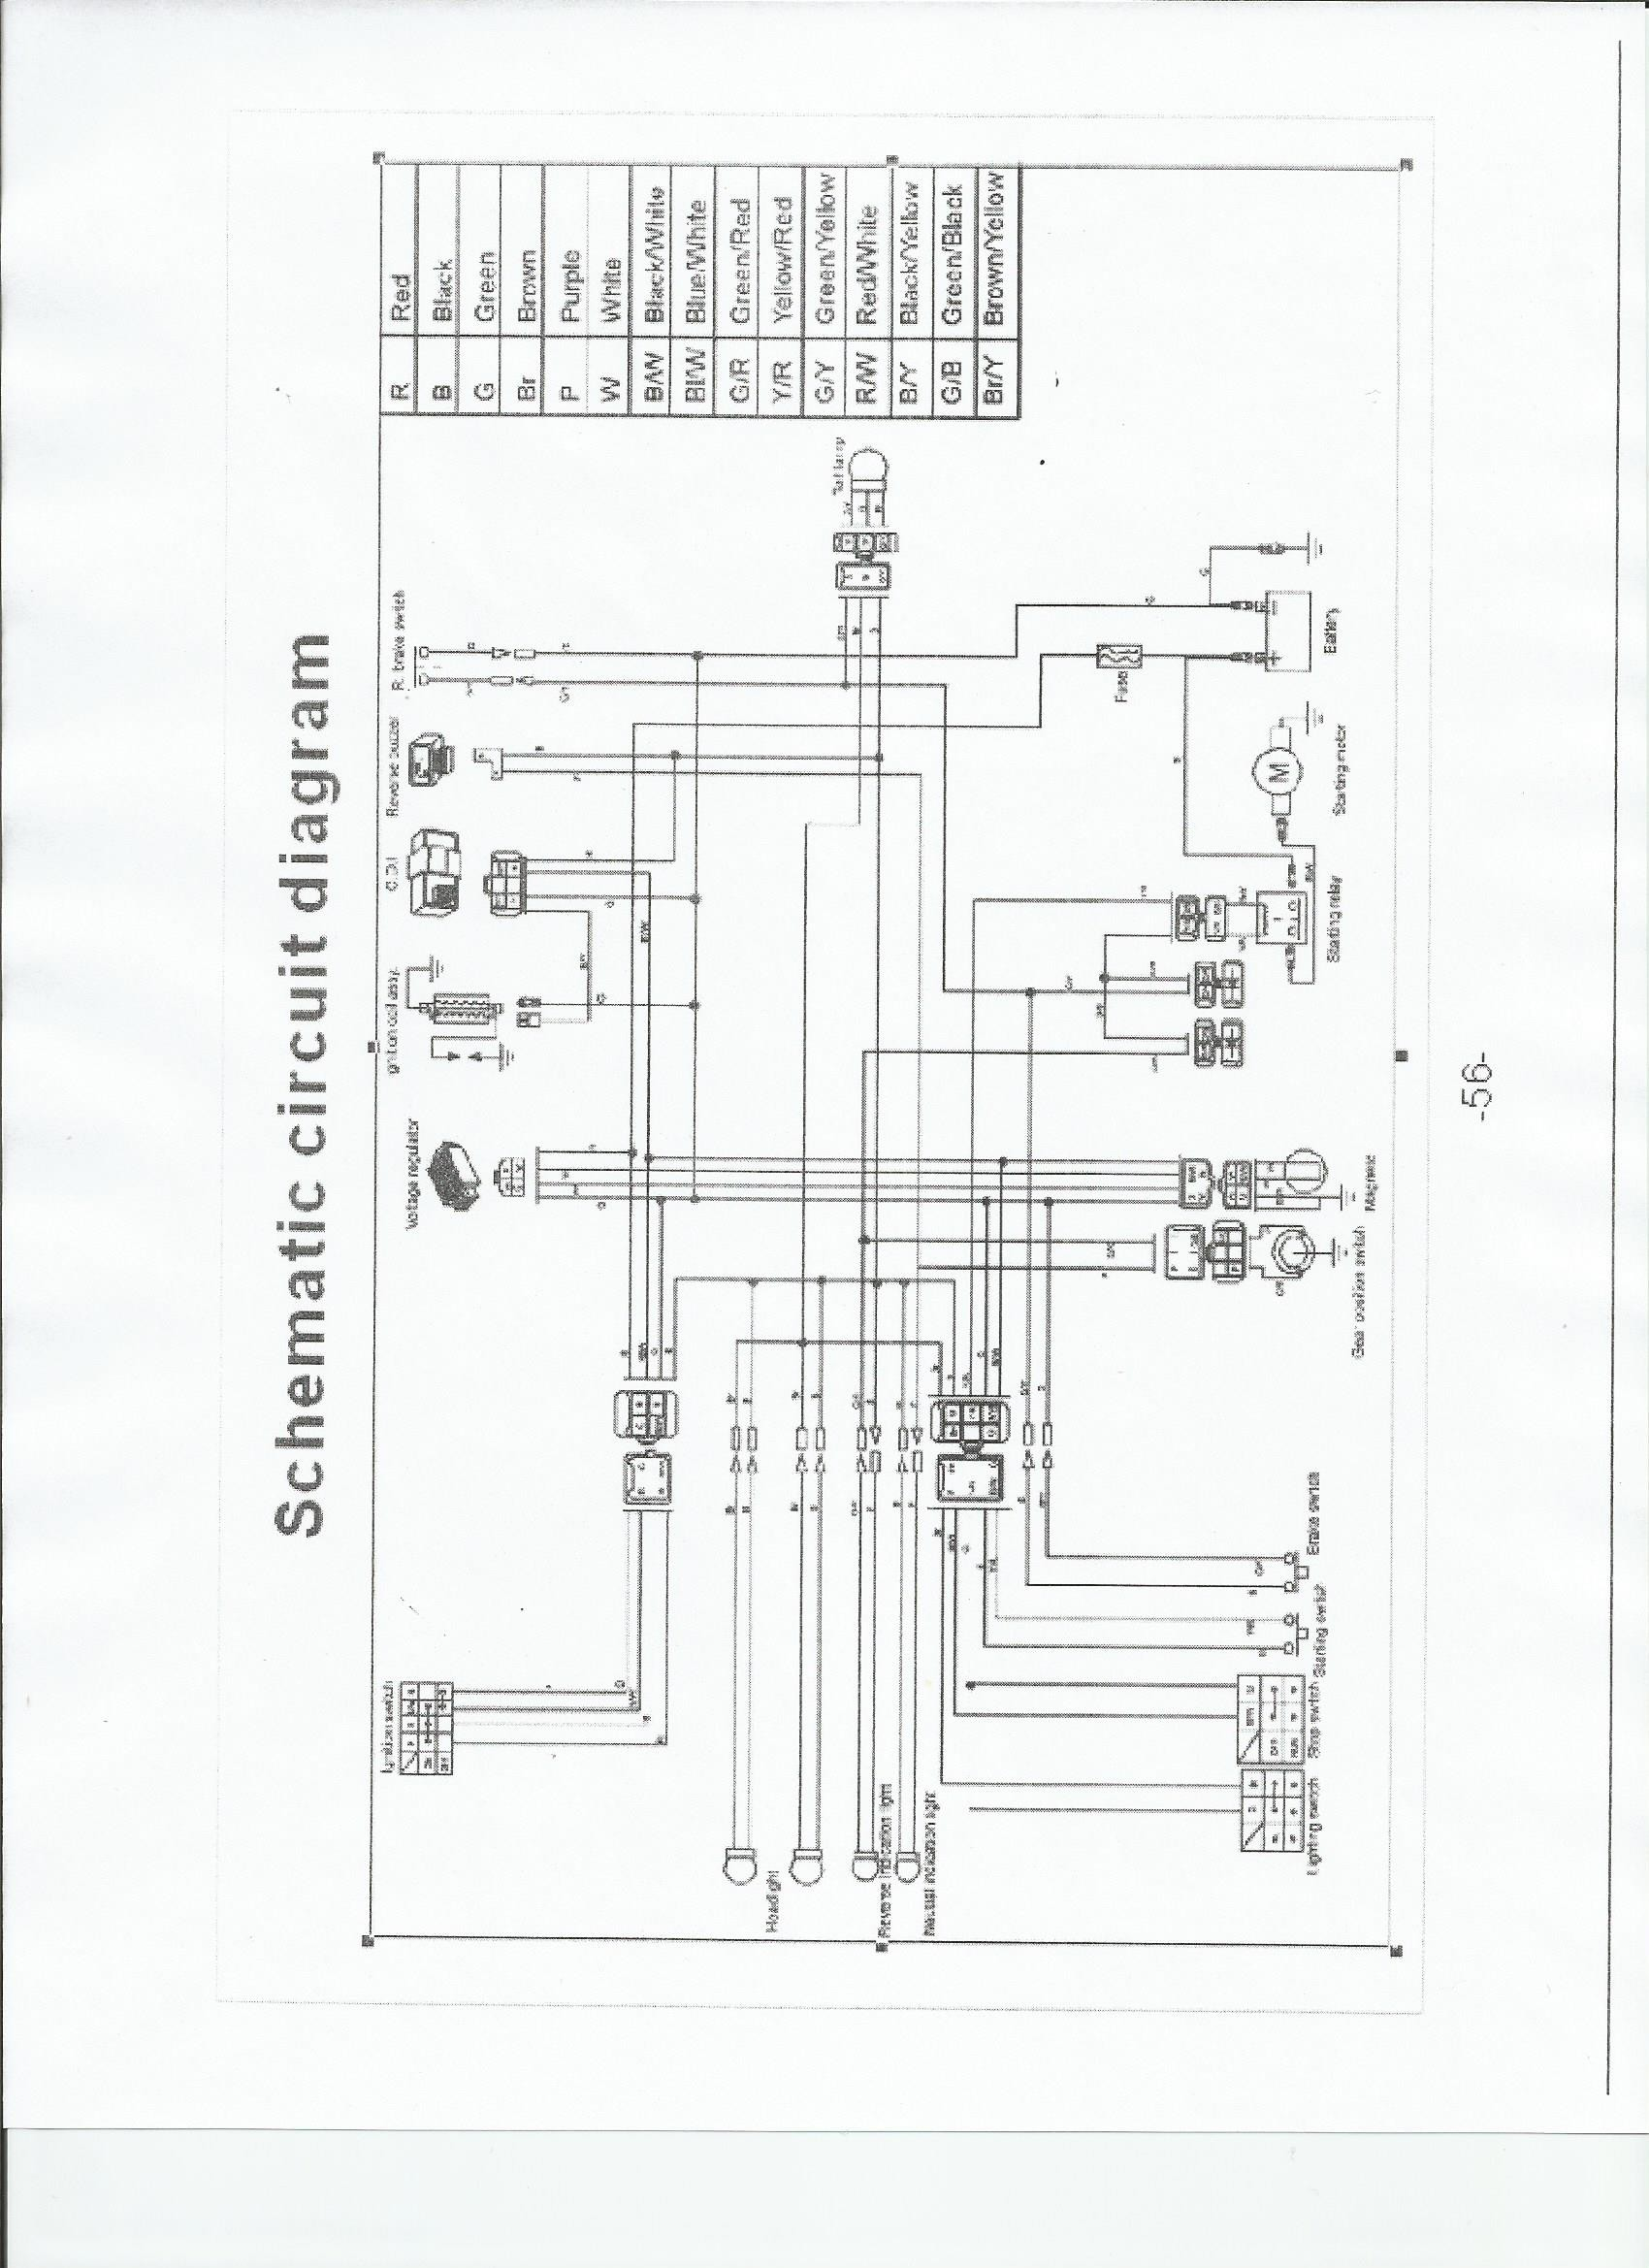 50cc Wiring Harness Diagram - Wiring Diagram Yer on 4 post ignition switch wiring diagram, 4 pin ignition switch wiring diagram, sunl 110 atv wiring diagram, bmw wiring harness diagram, 4 wire fan switch diagram, distributor wiring diagram, chrysler ignition wiring diagram, 4 wire wiring light switch, 4 position ignition switch diagram, 4 wire sensor diagram, 1988 ford ranger wiring diagram, starter solenoid relay diagram, dodge ram ignition diagram, 4 wire relay diagram, ignition system wiring diagram, ford f-250 ignition wiring diagram, 4 wire switch schematic, vw dune buggy ignition wiring diagram, 1998 chevy cavalier ignition wiring diagram, turn signal switch wiring diagram,